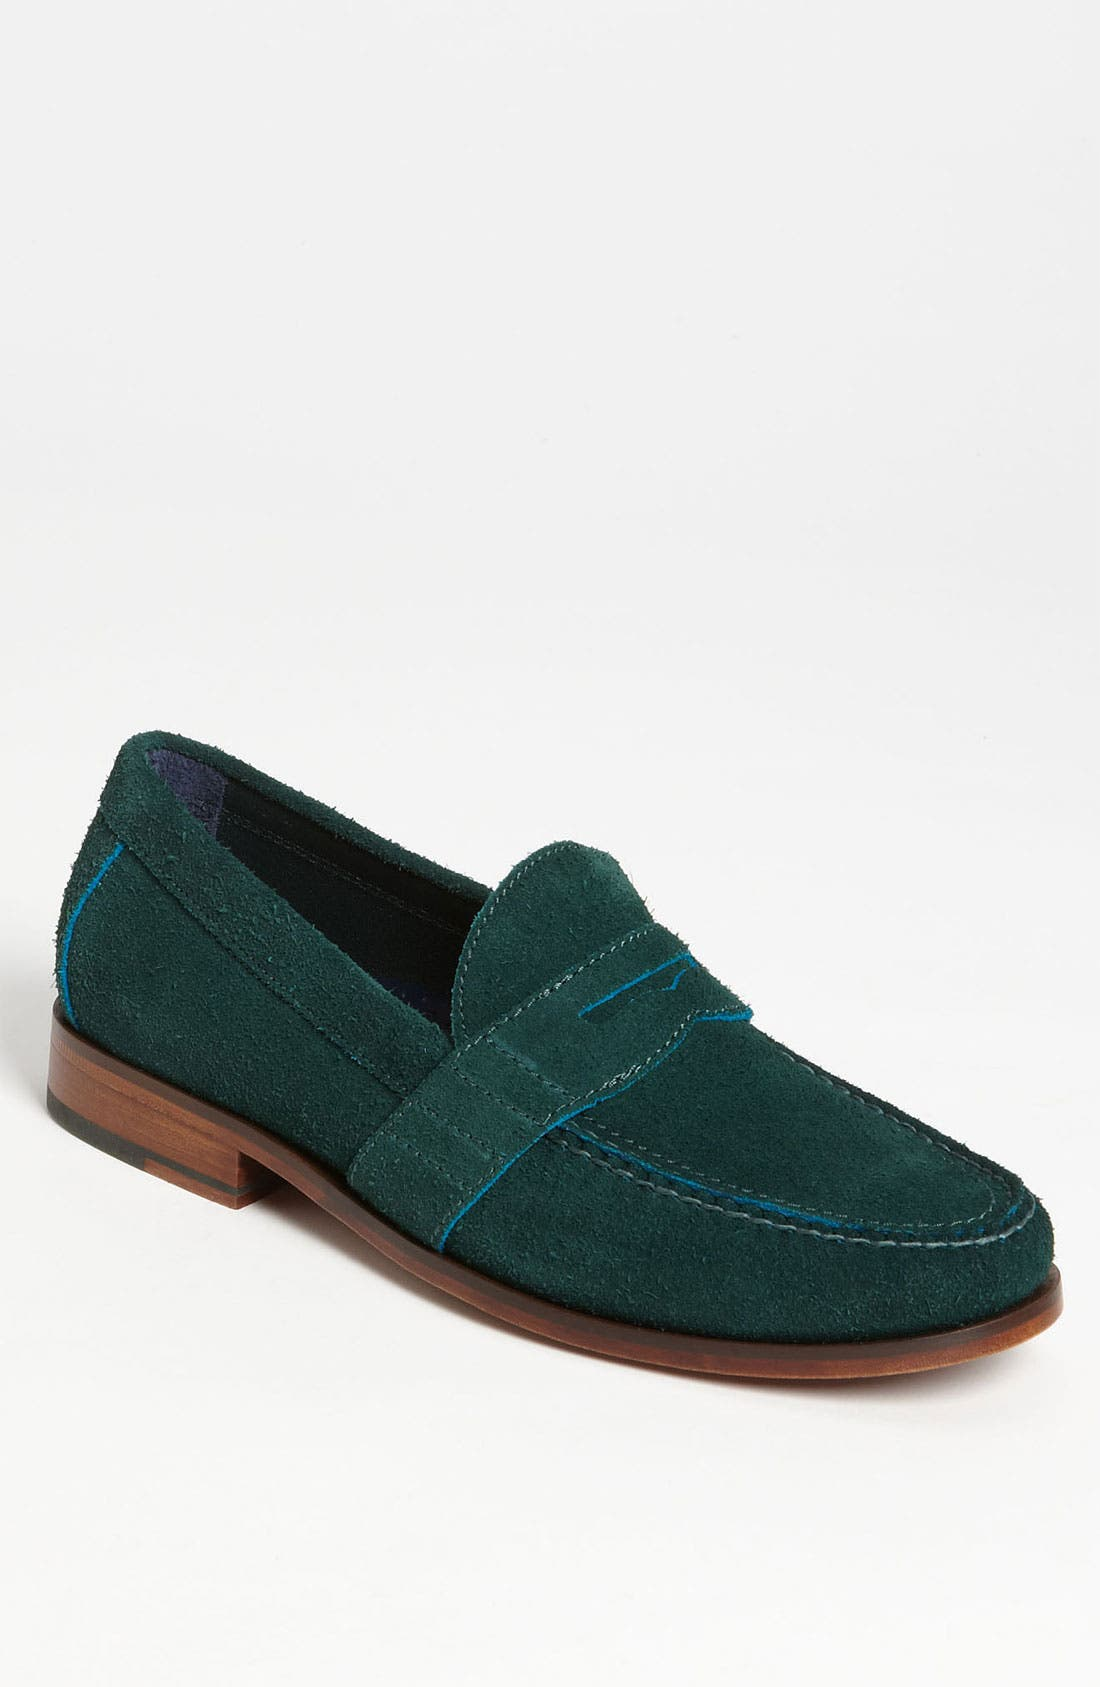 Alternate Image 1 Selected - Cole Haan 'Air Monroe' Penny Loafer